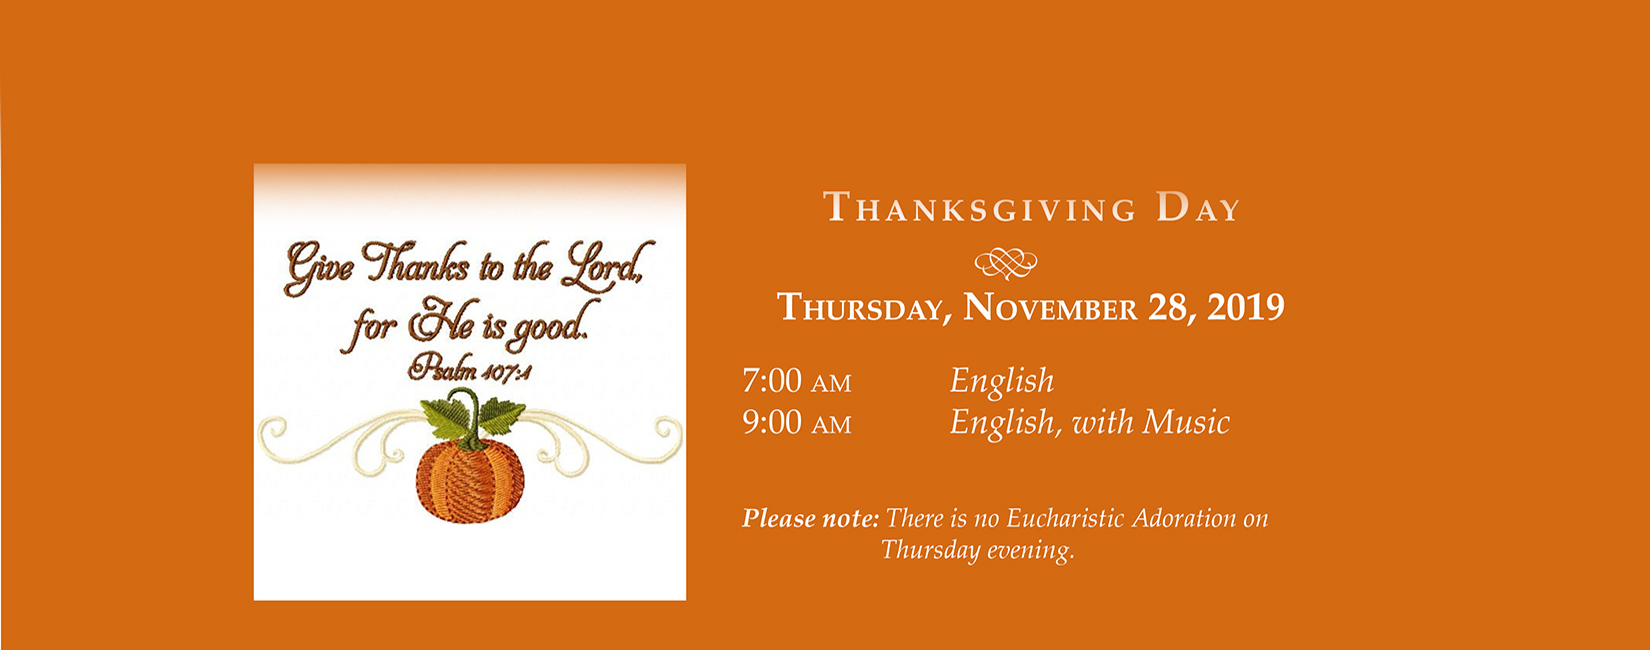 Thanksgiving Mass Schedule - All Saints Catholic Church